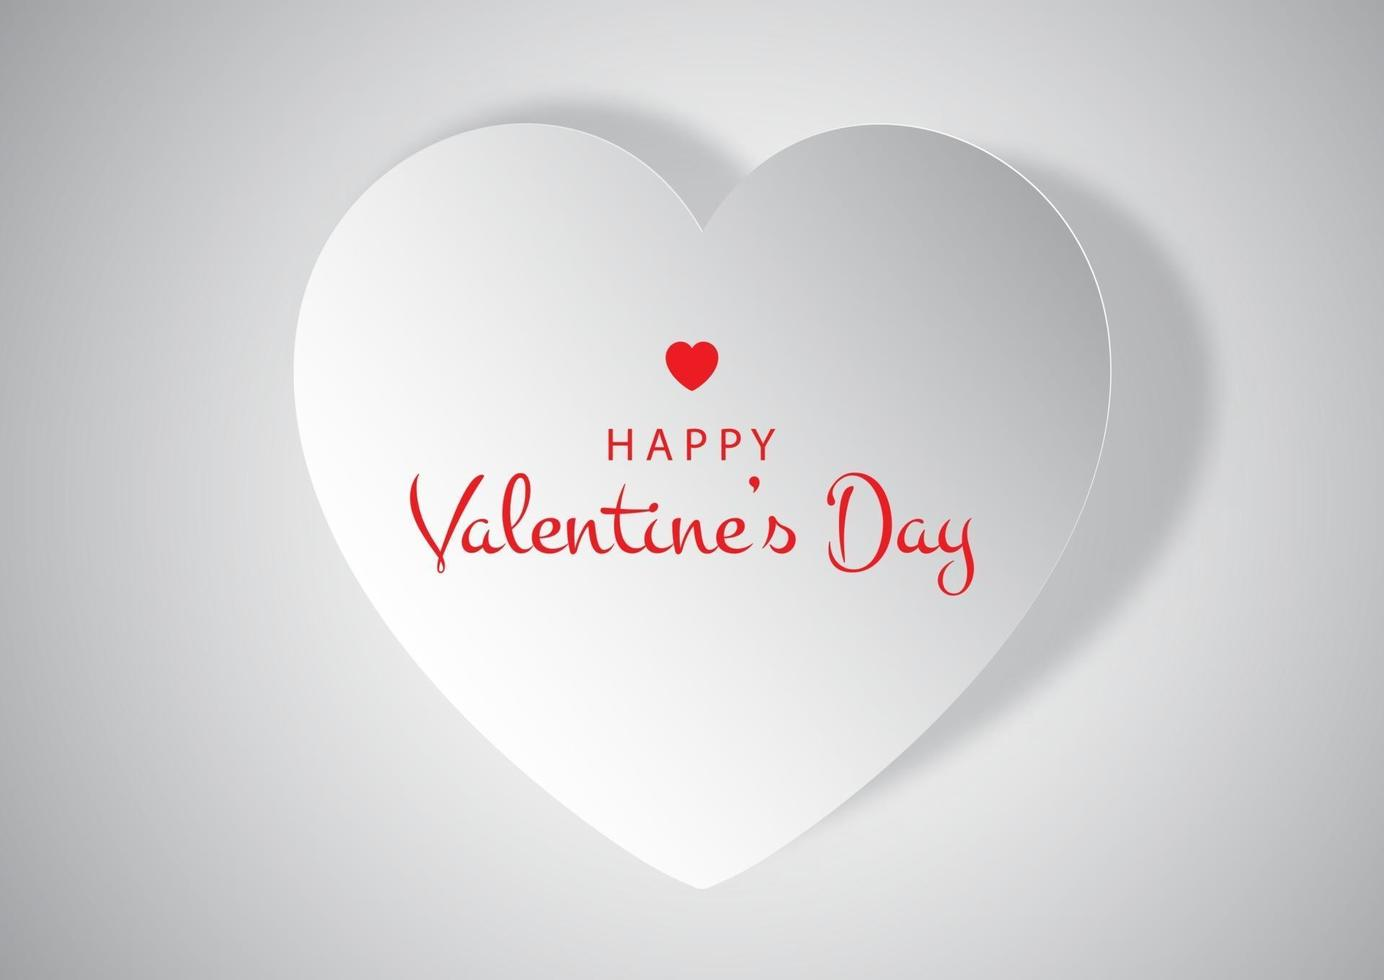 valentines day paper cut heart background vector